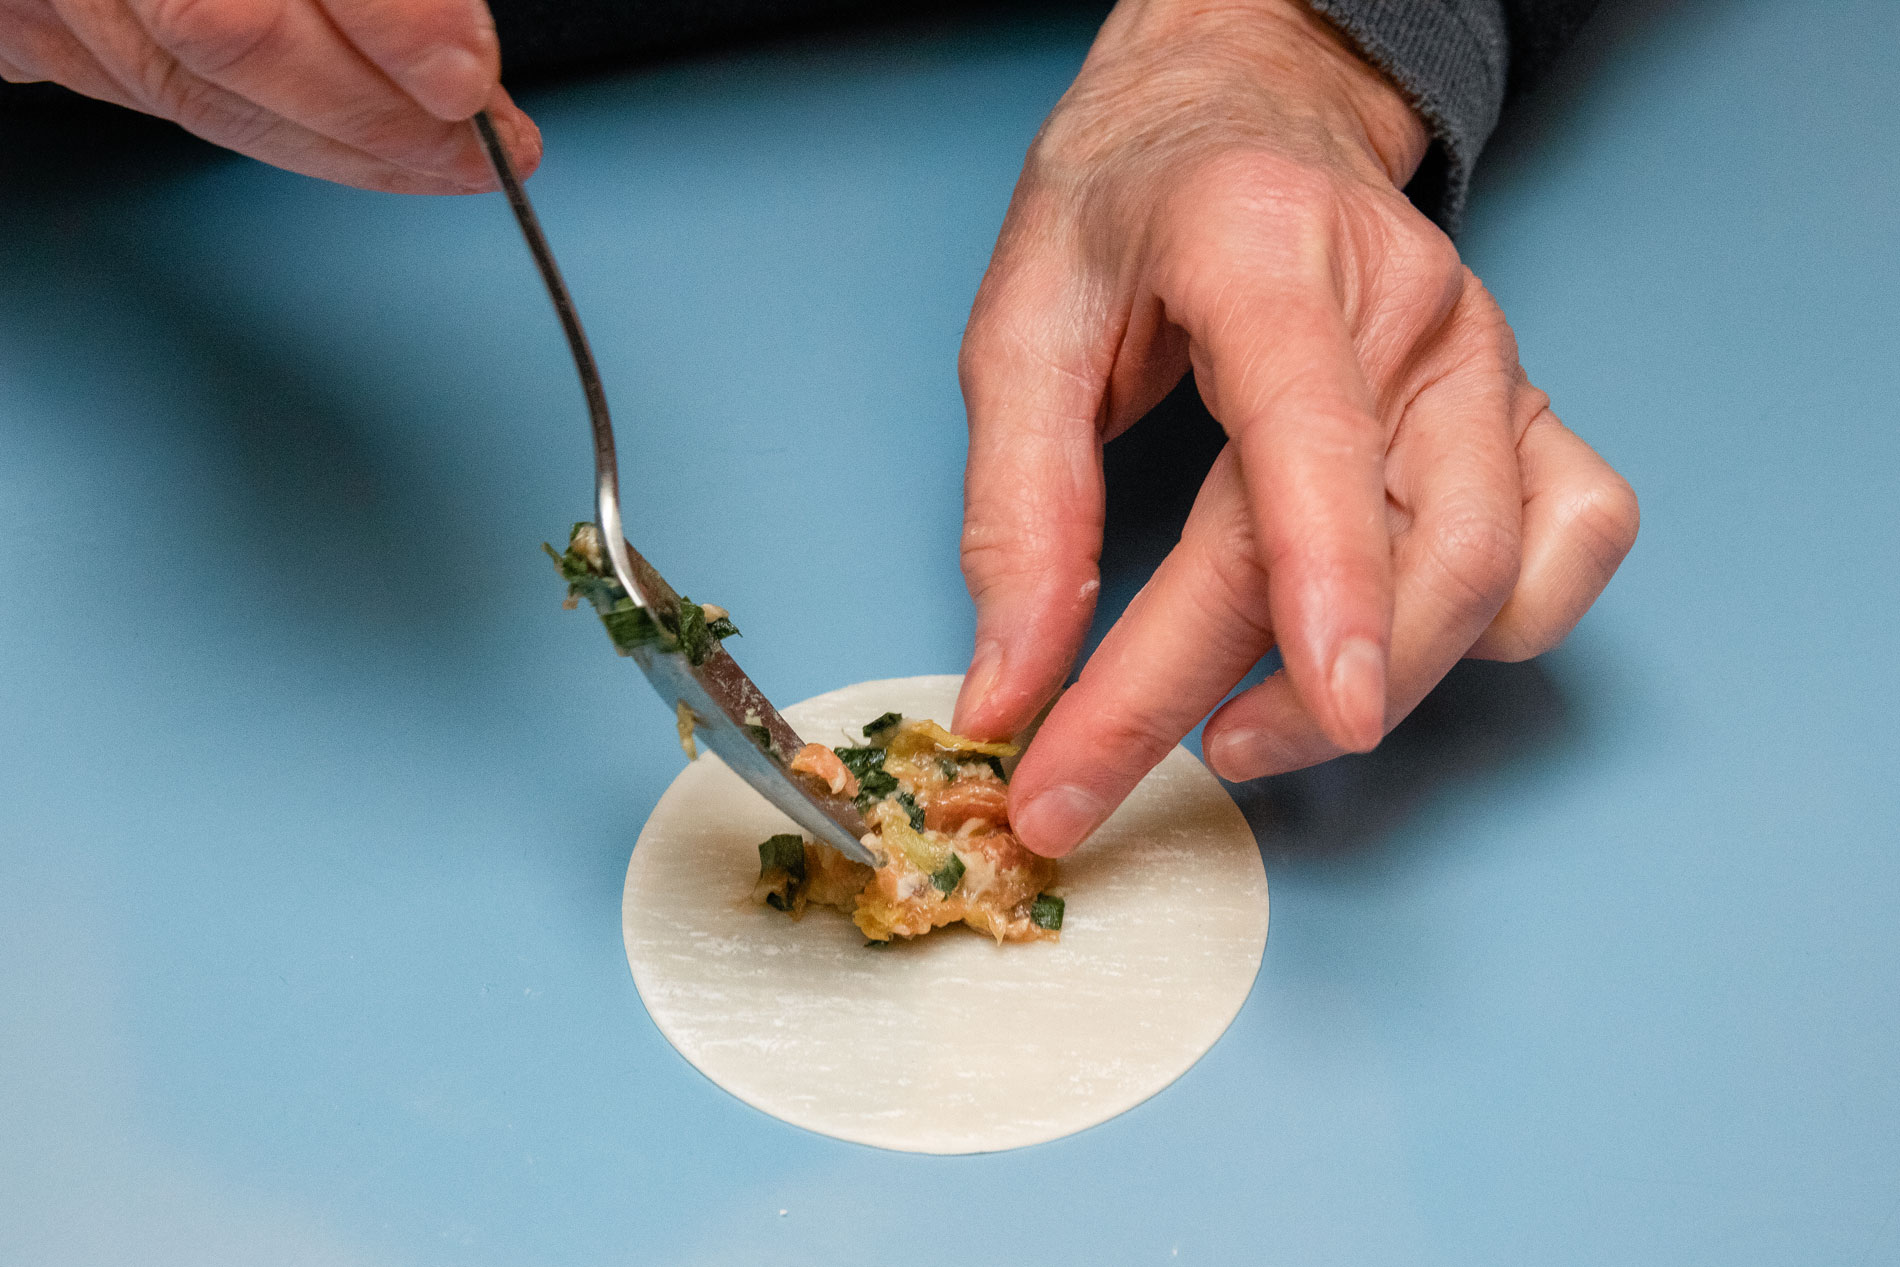 A person gently placing filling into a dumpling wrapper.